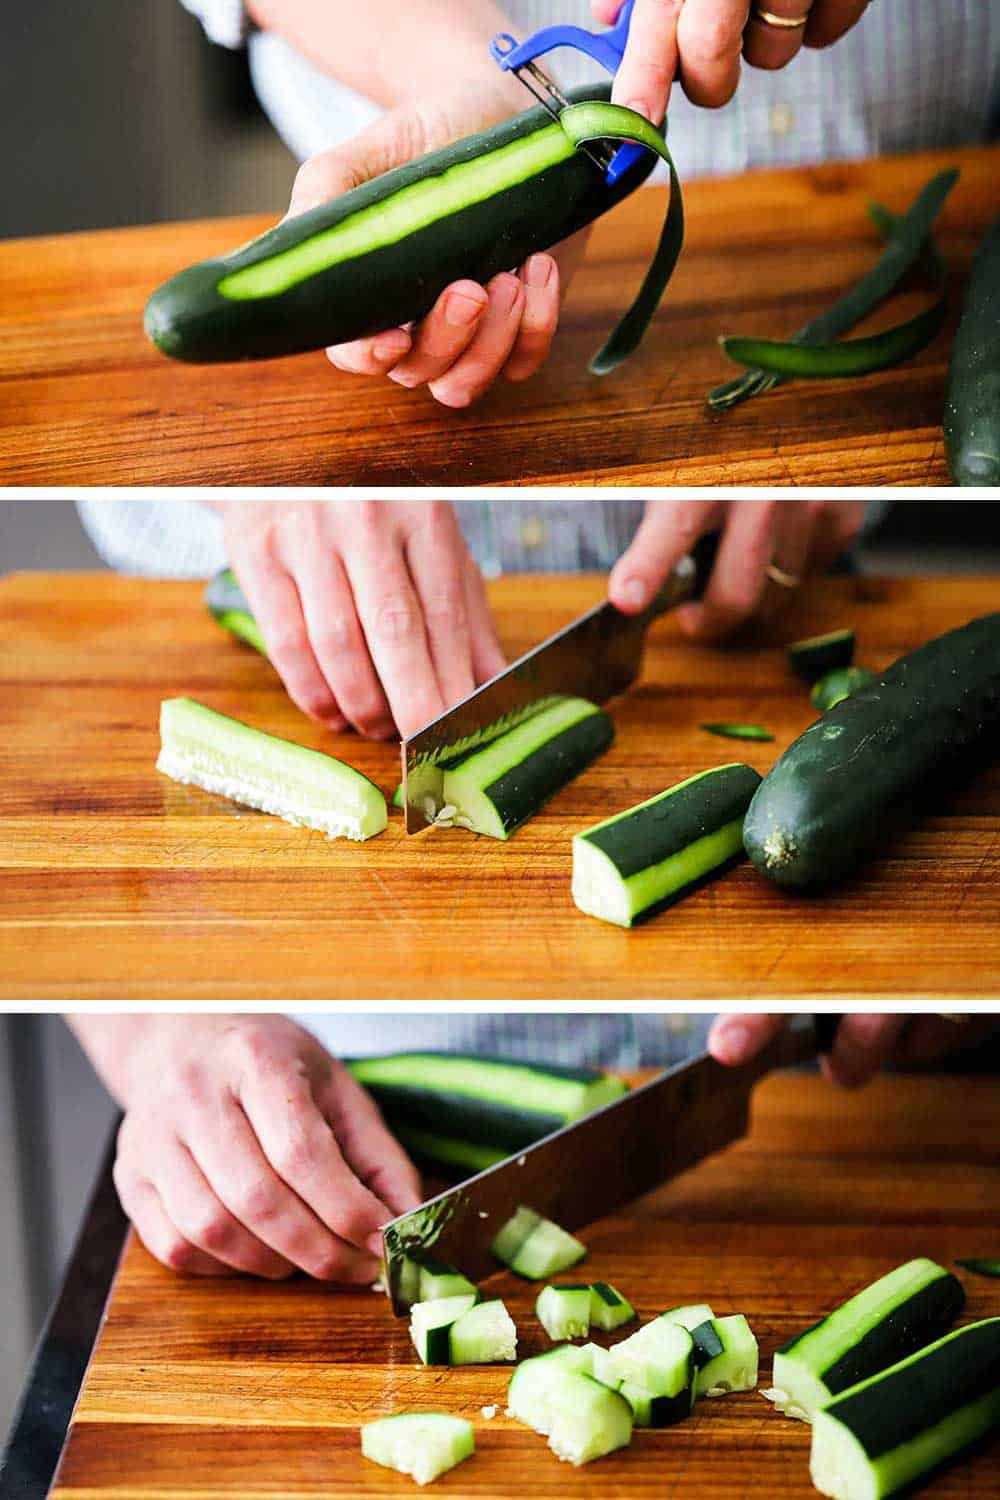 A person peeling a cucumber over a cutting board, and then quartering the cucumber, and then cutting it into bite-sized pieces.